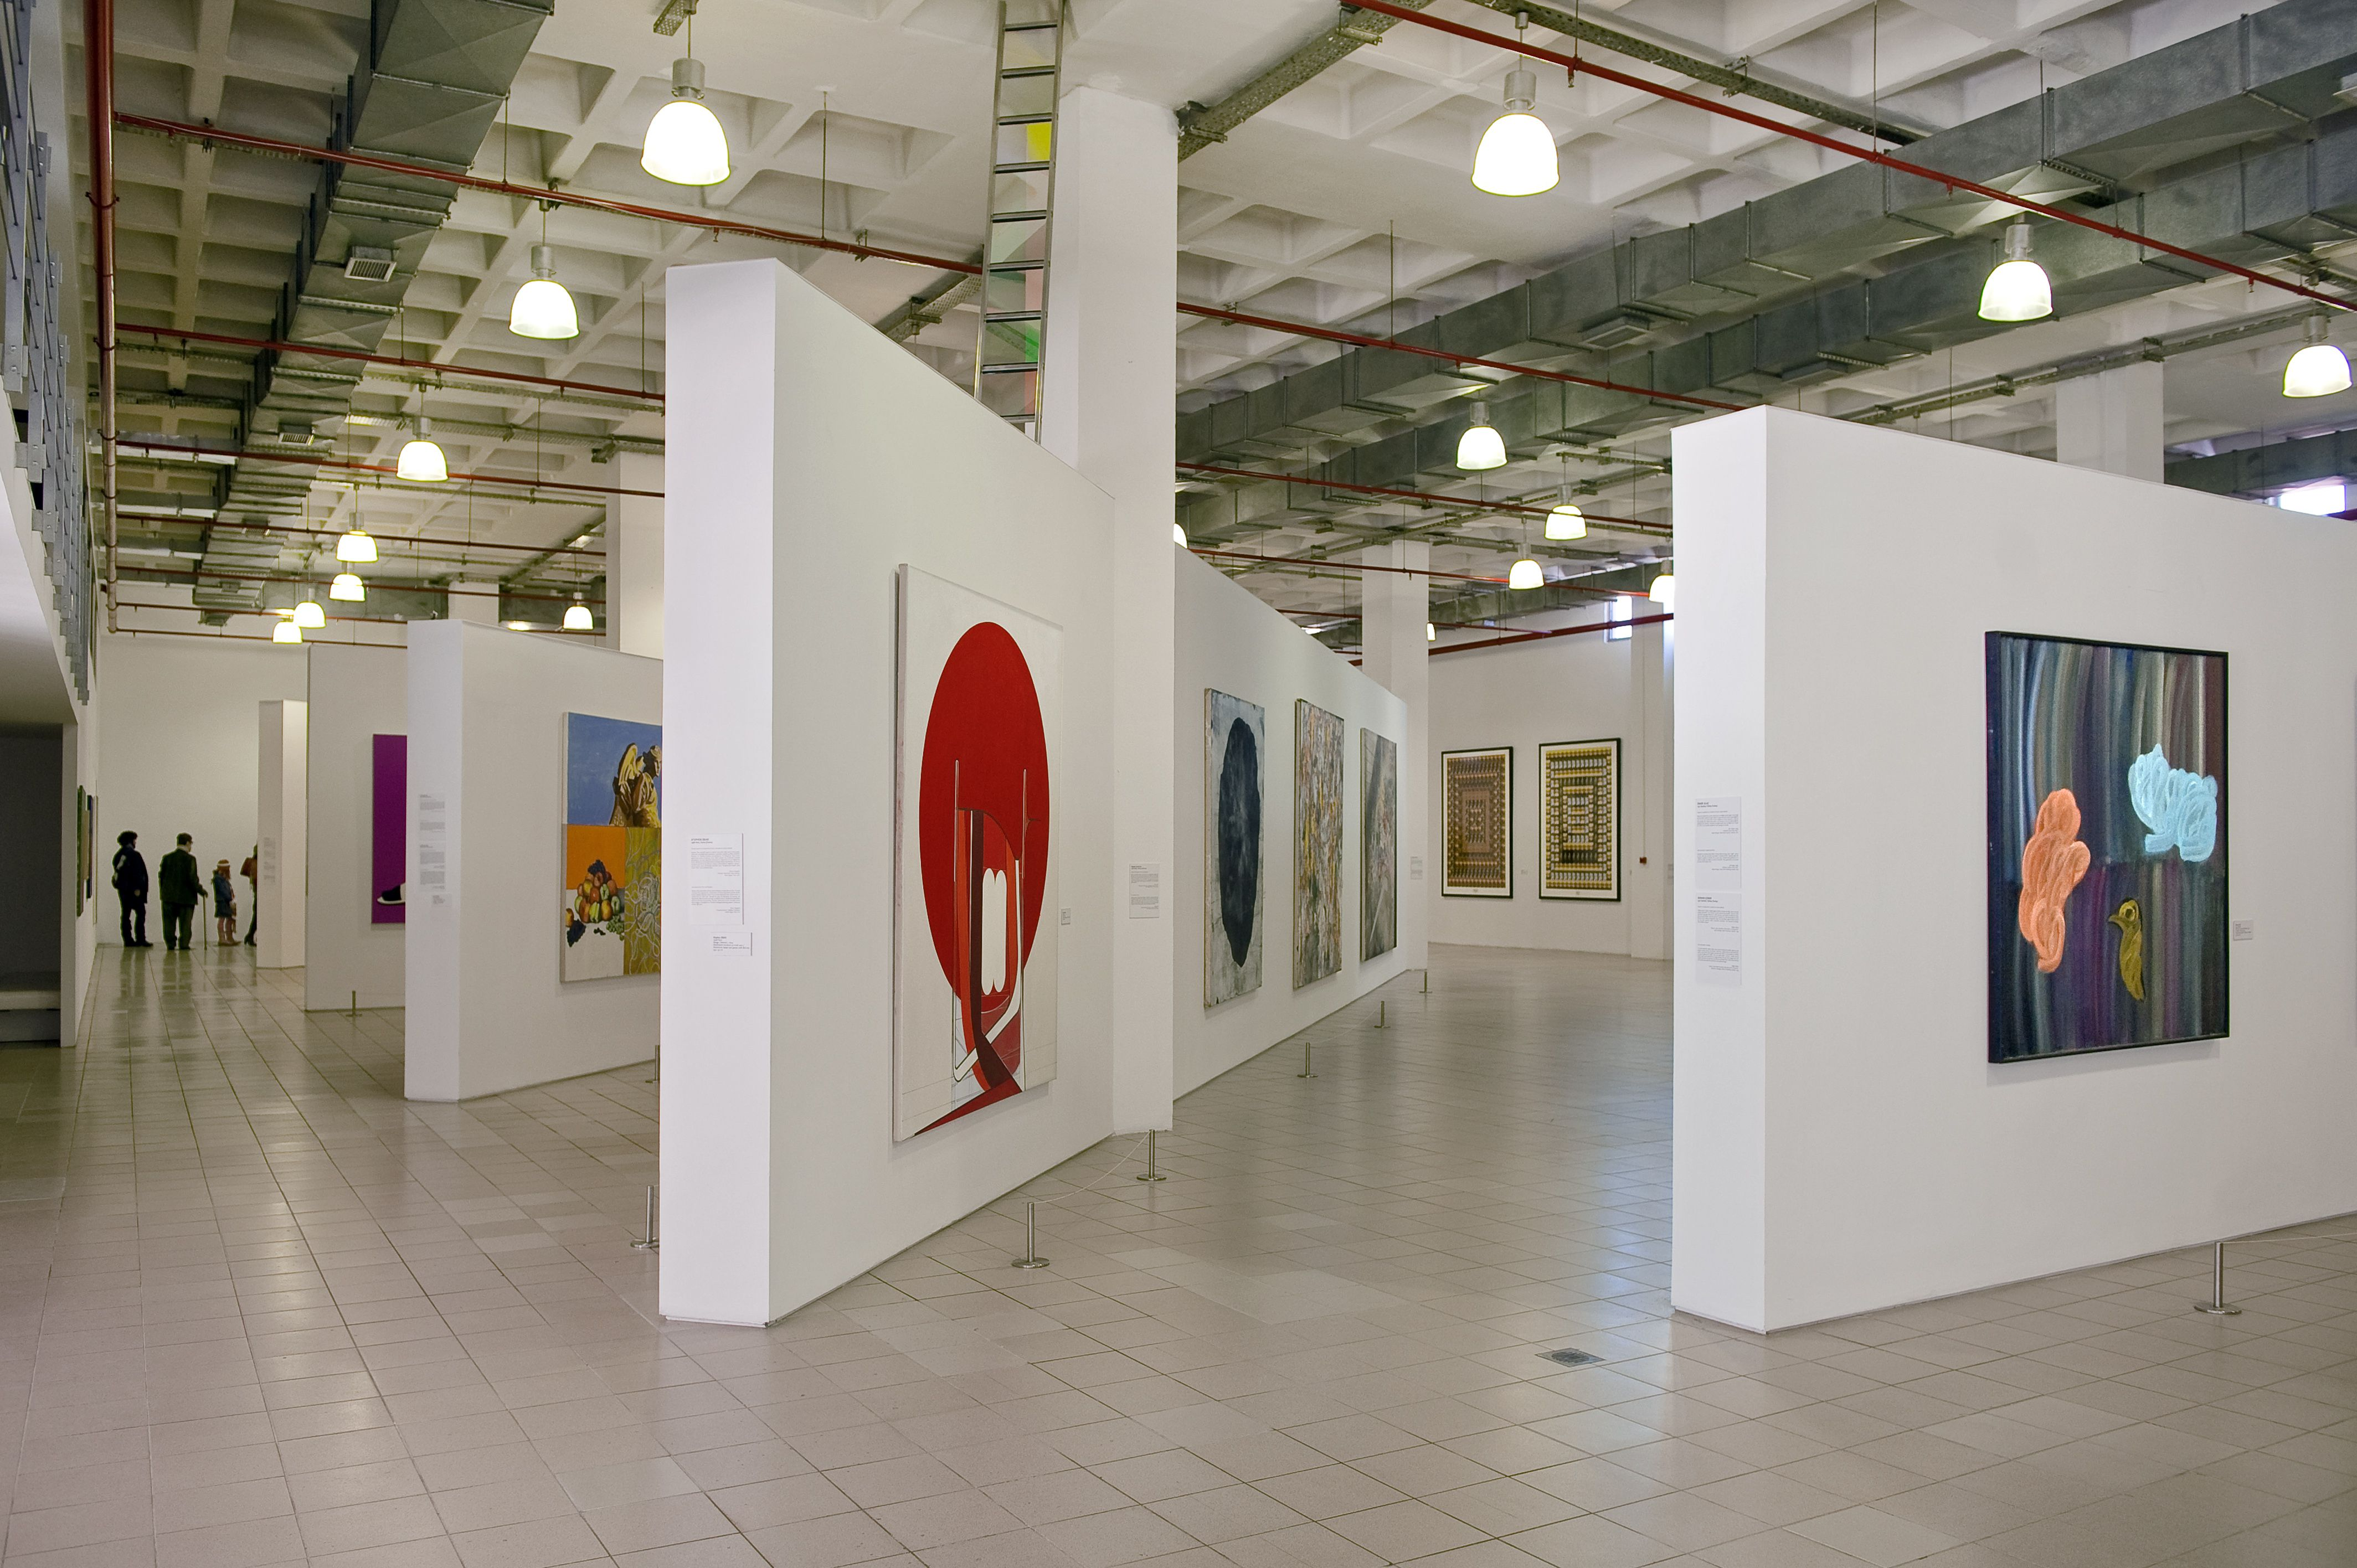 How to design an art gallery - How To Open An Art Gallery